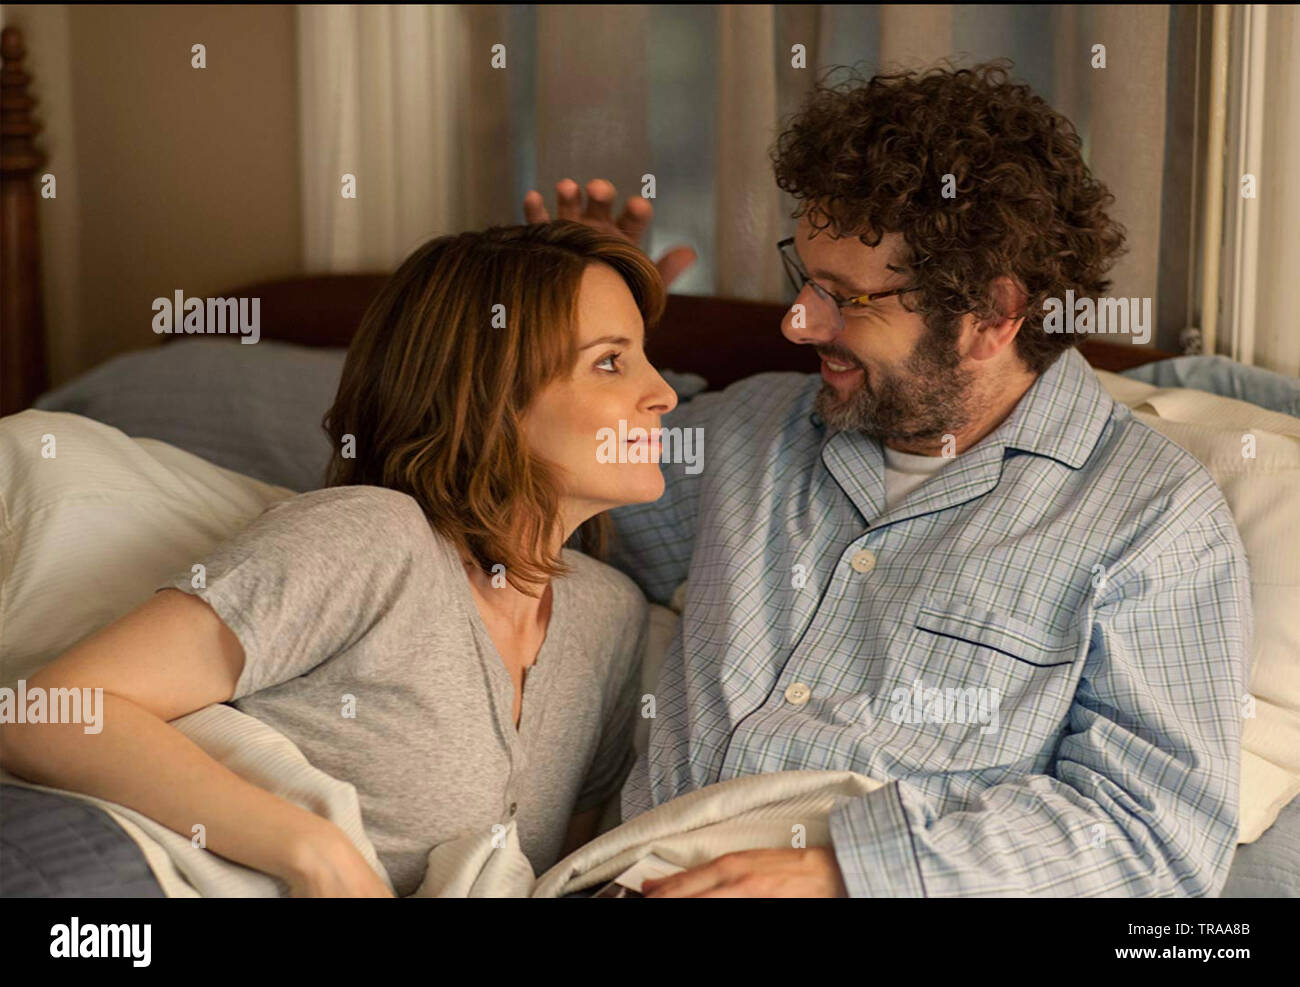 ADMISSION 2013 Focus Features film with Tina Fey and Michael Sheen - Stock Image